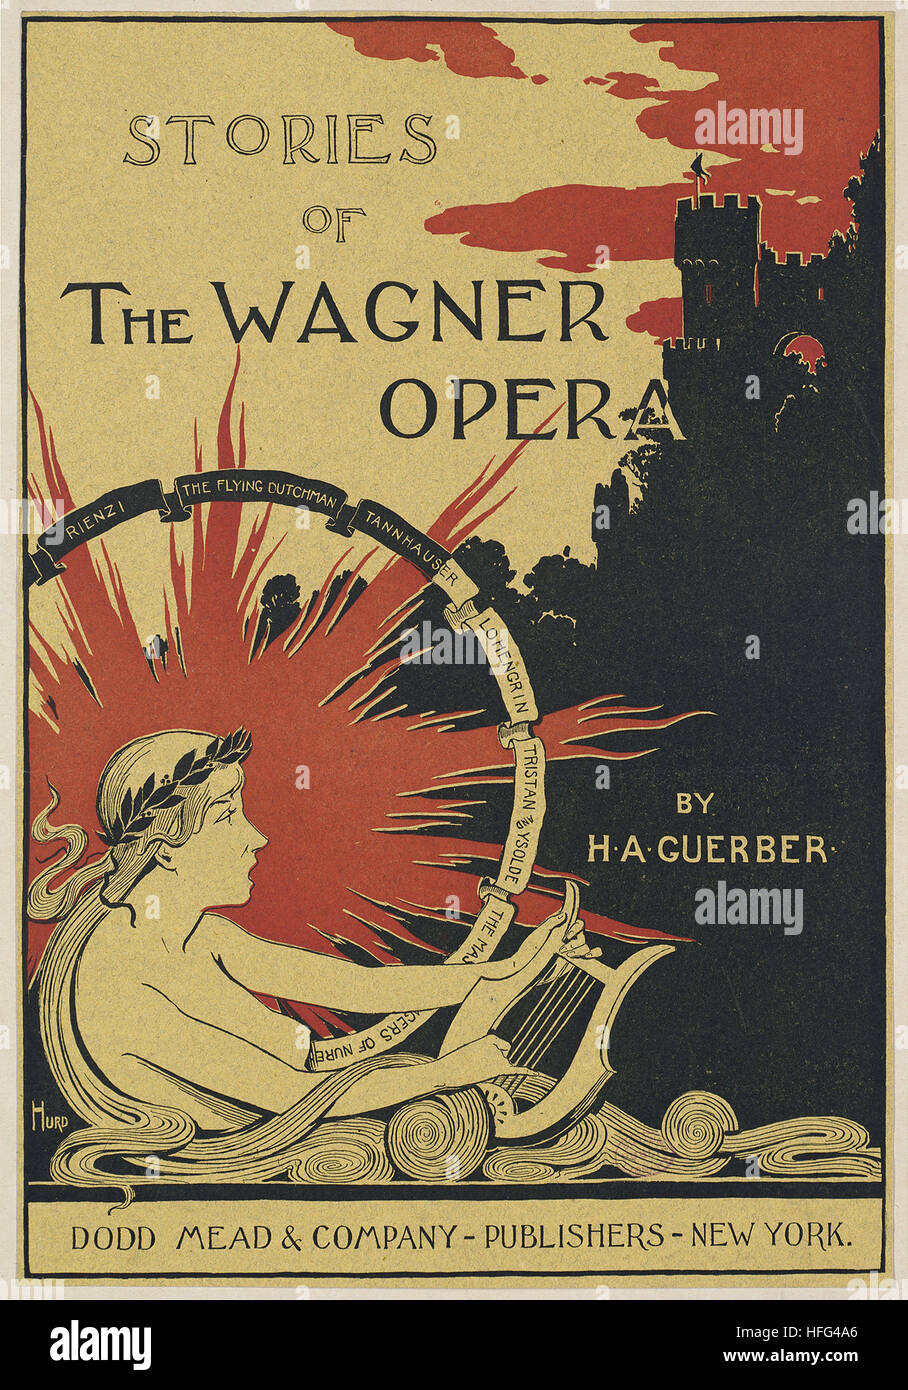 Stories of the Wagner opera by H. A. Guerber. - Stock Image